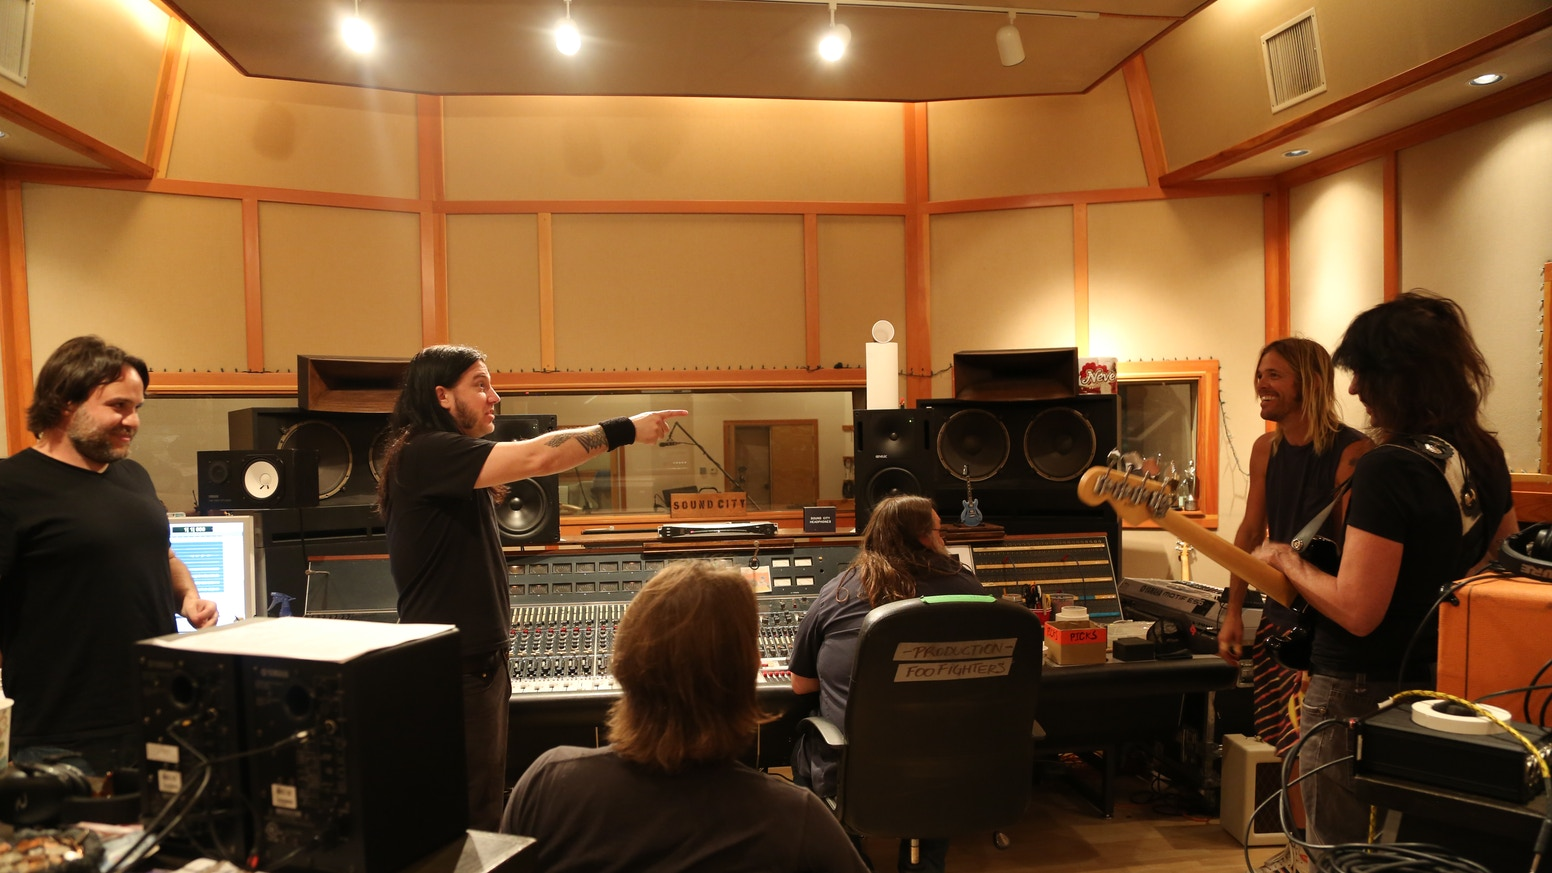 TJ had the opportunity to record 3 songs at the Foo Fighters' private studio - 606. You helped us finish the album!